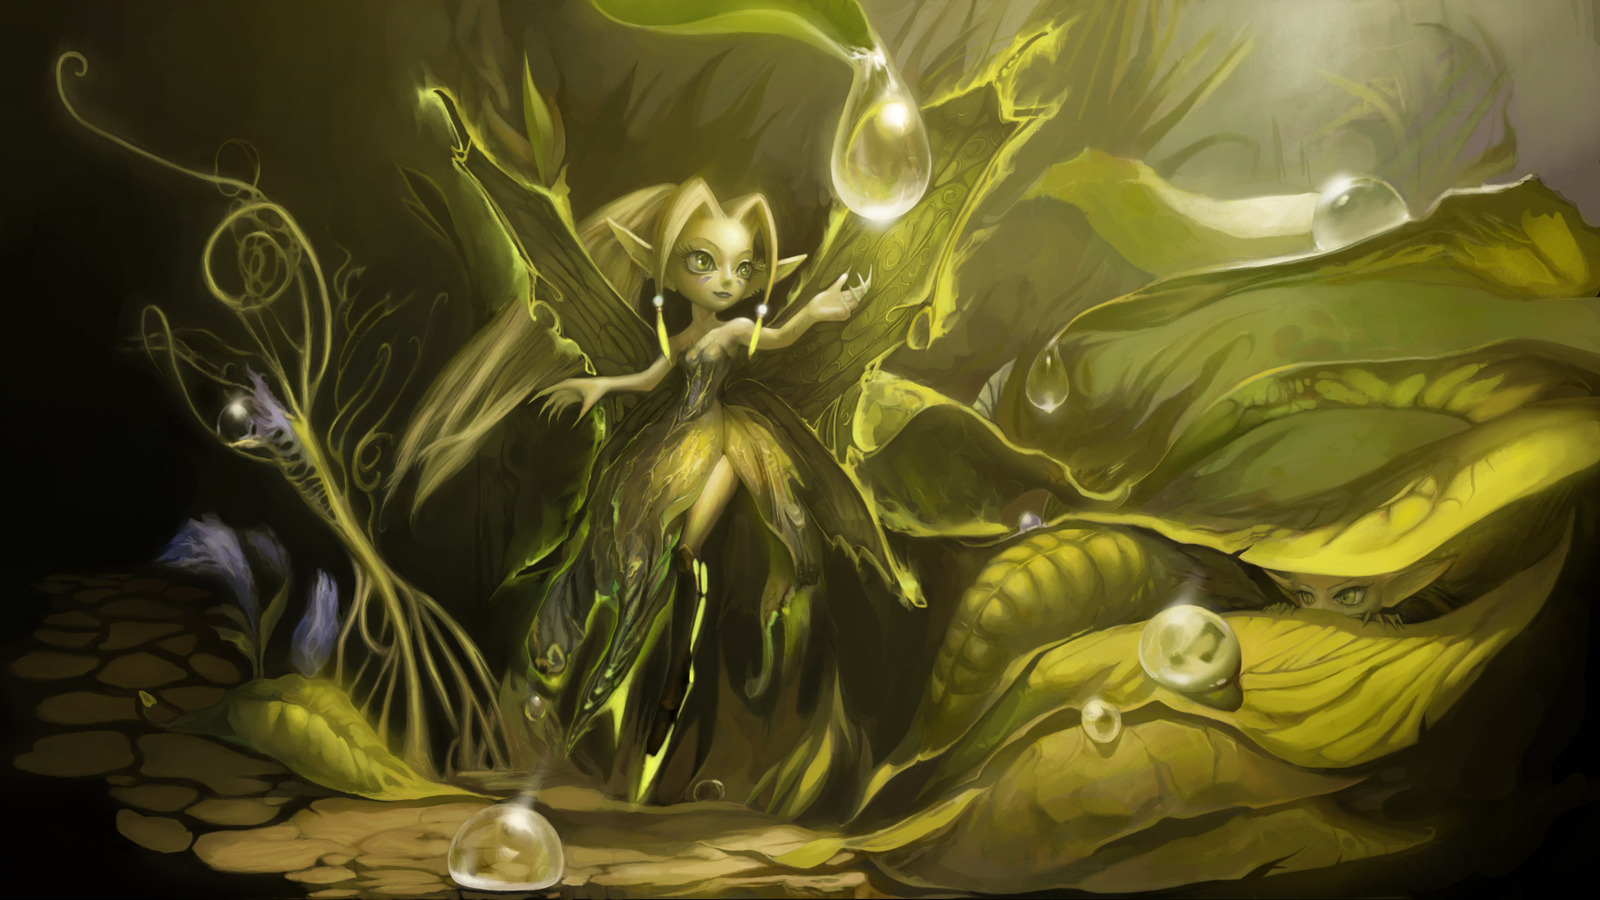 Faerie Girl Wallpaper Fairy Wallpaper And Background Image 1600x900 Id 366434